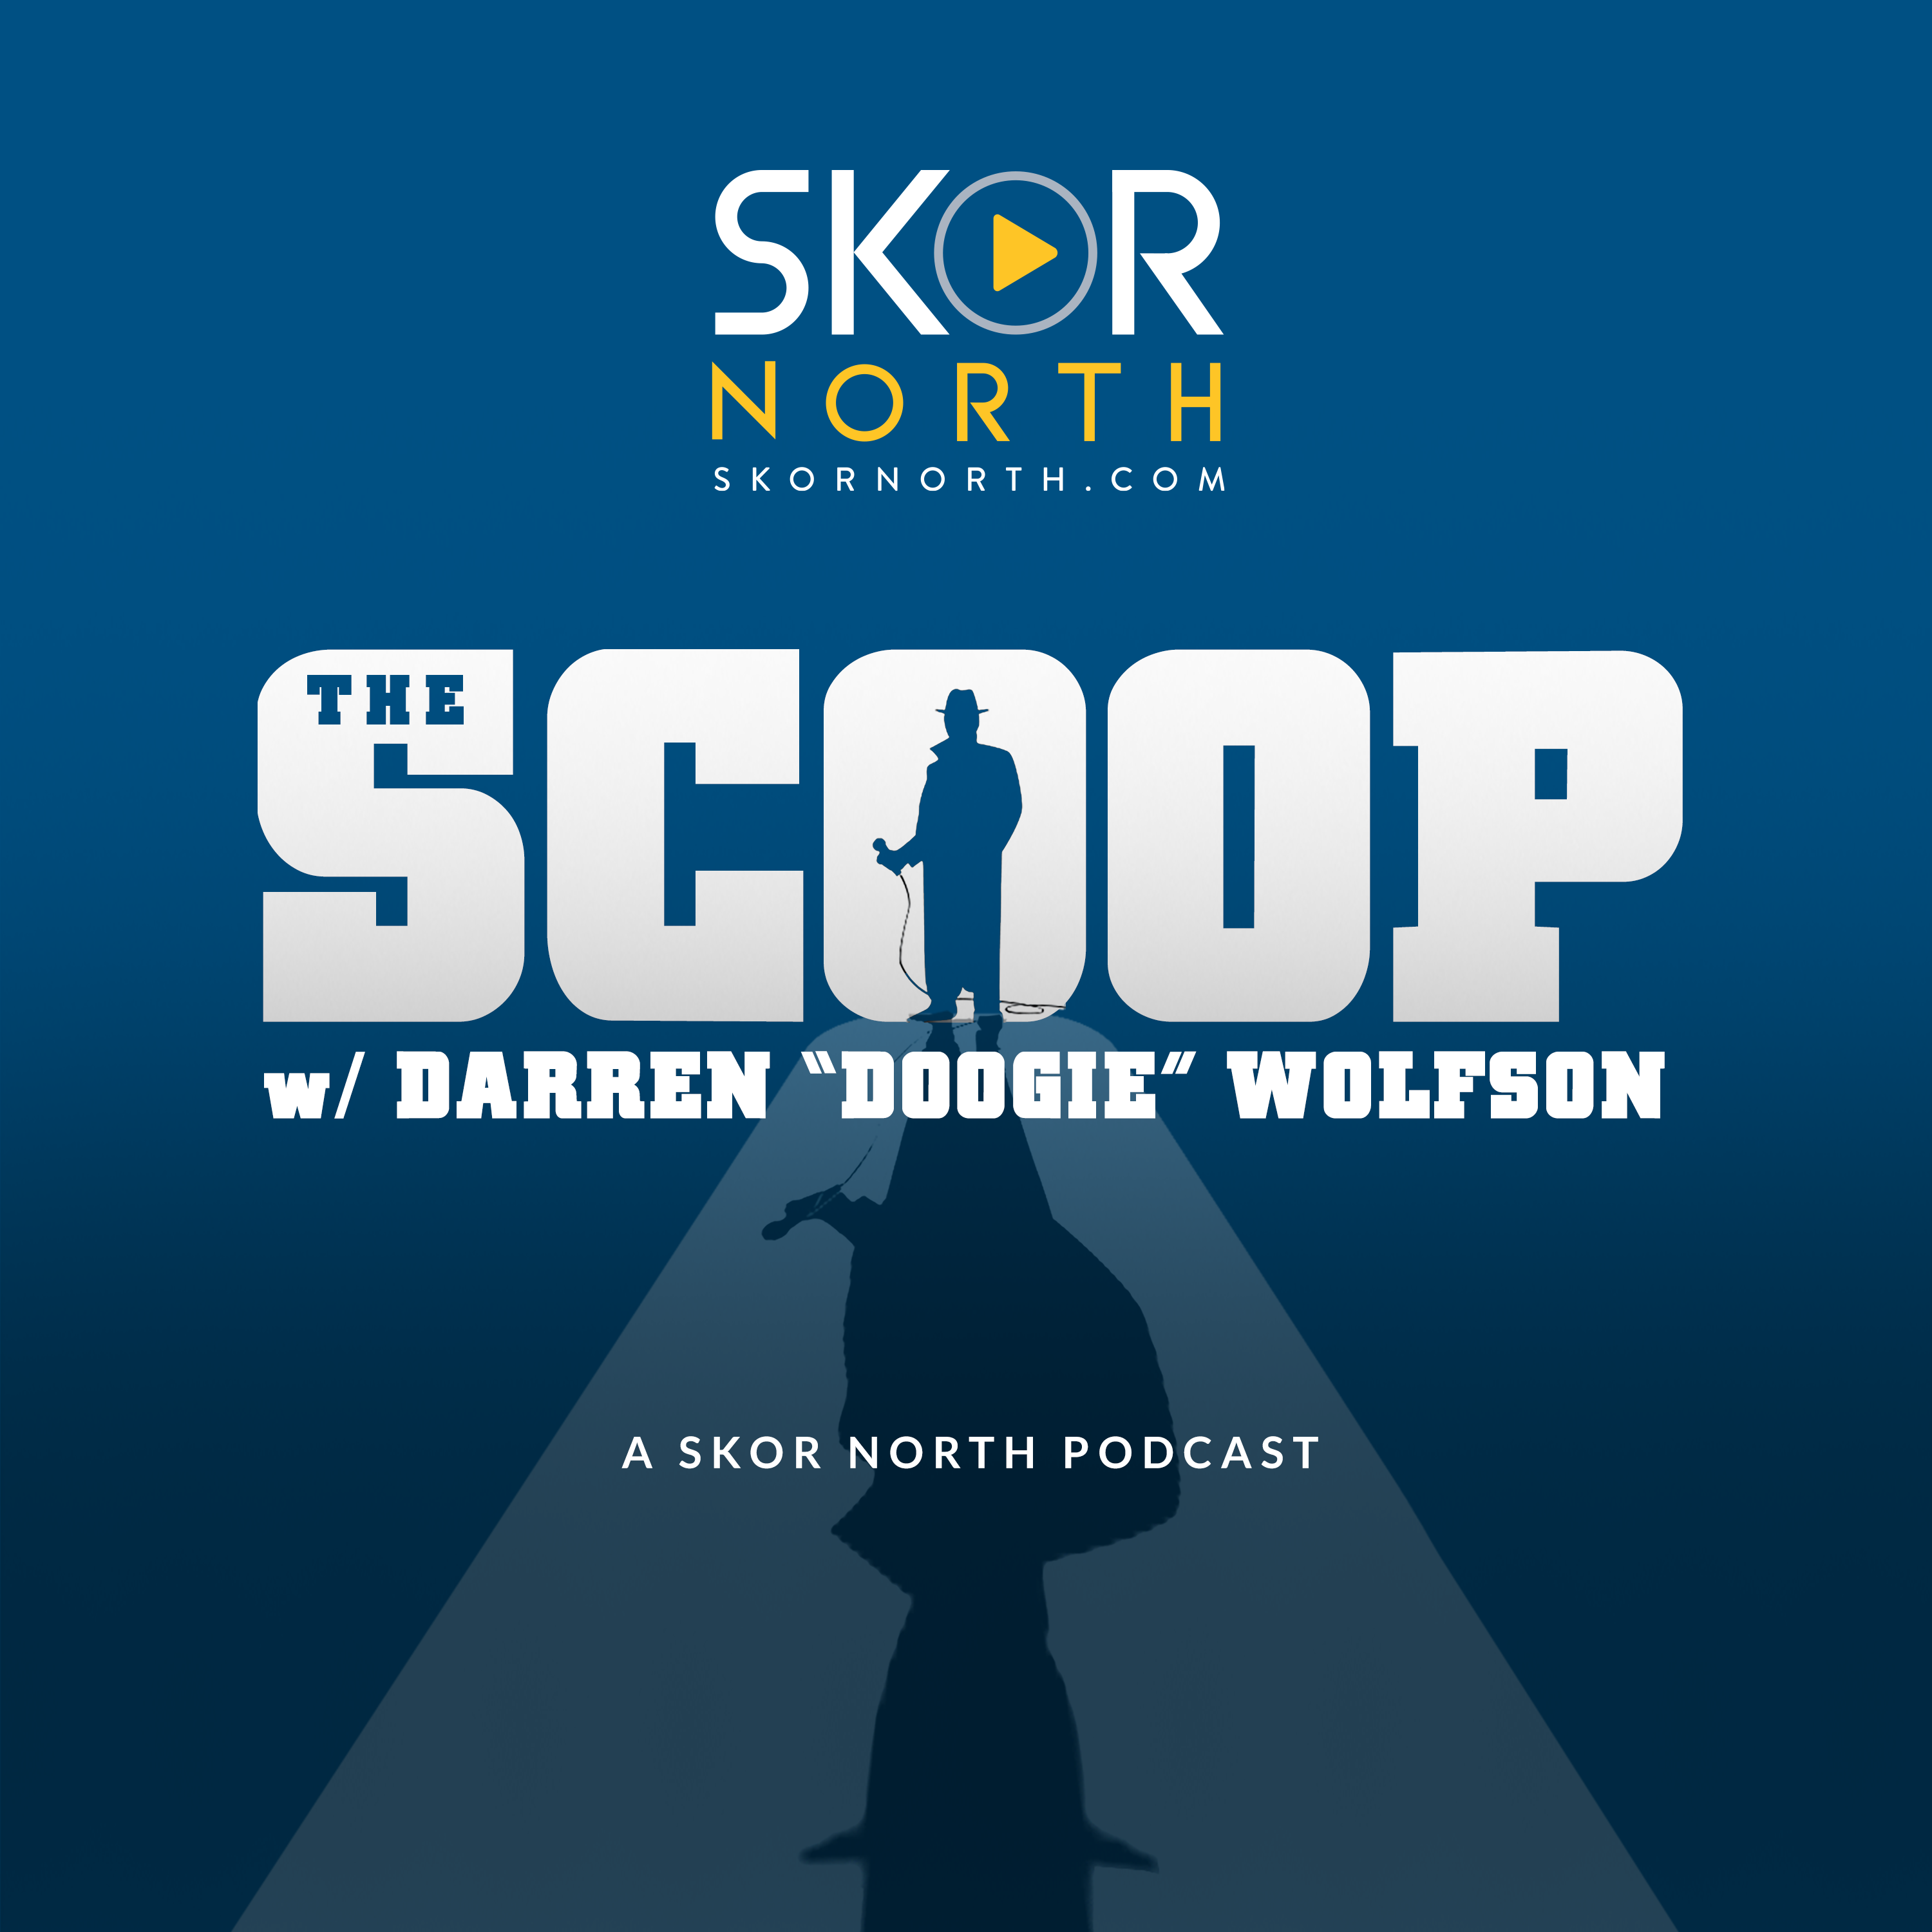 The Scoop w/ Doogie